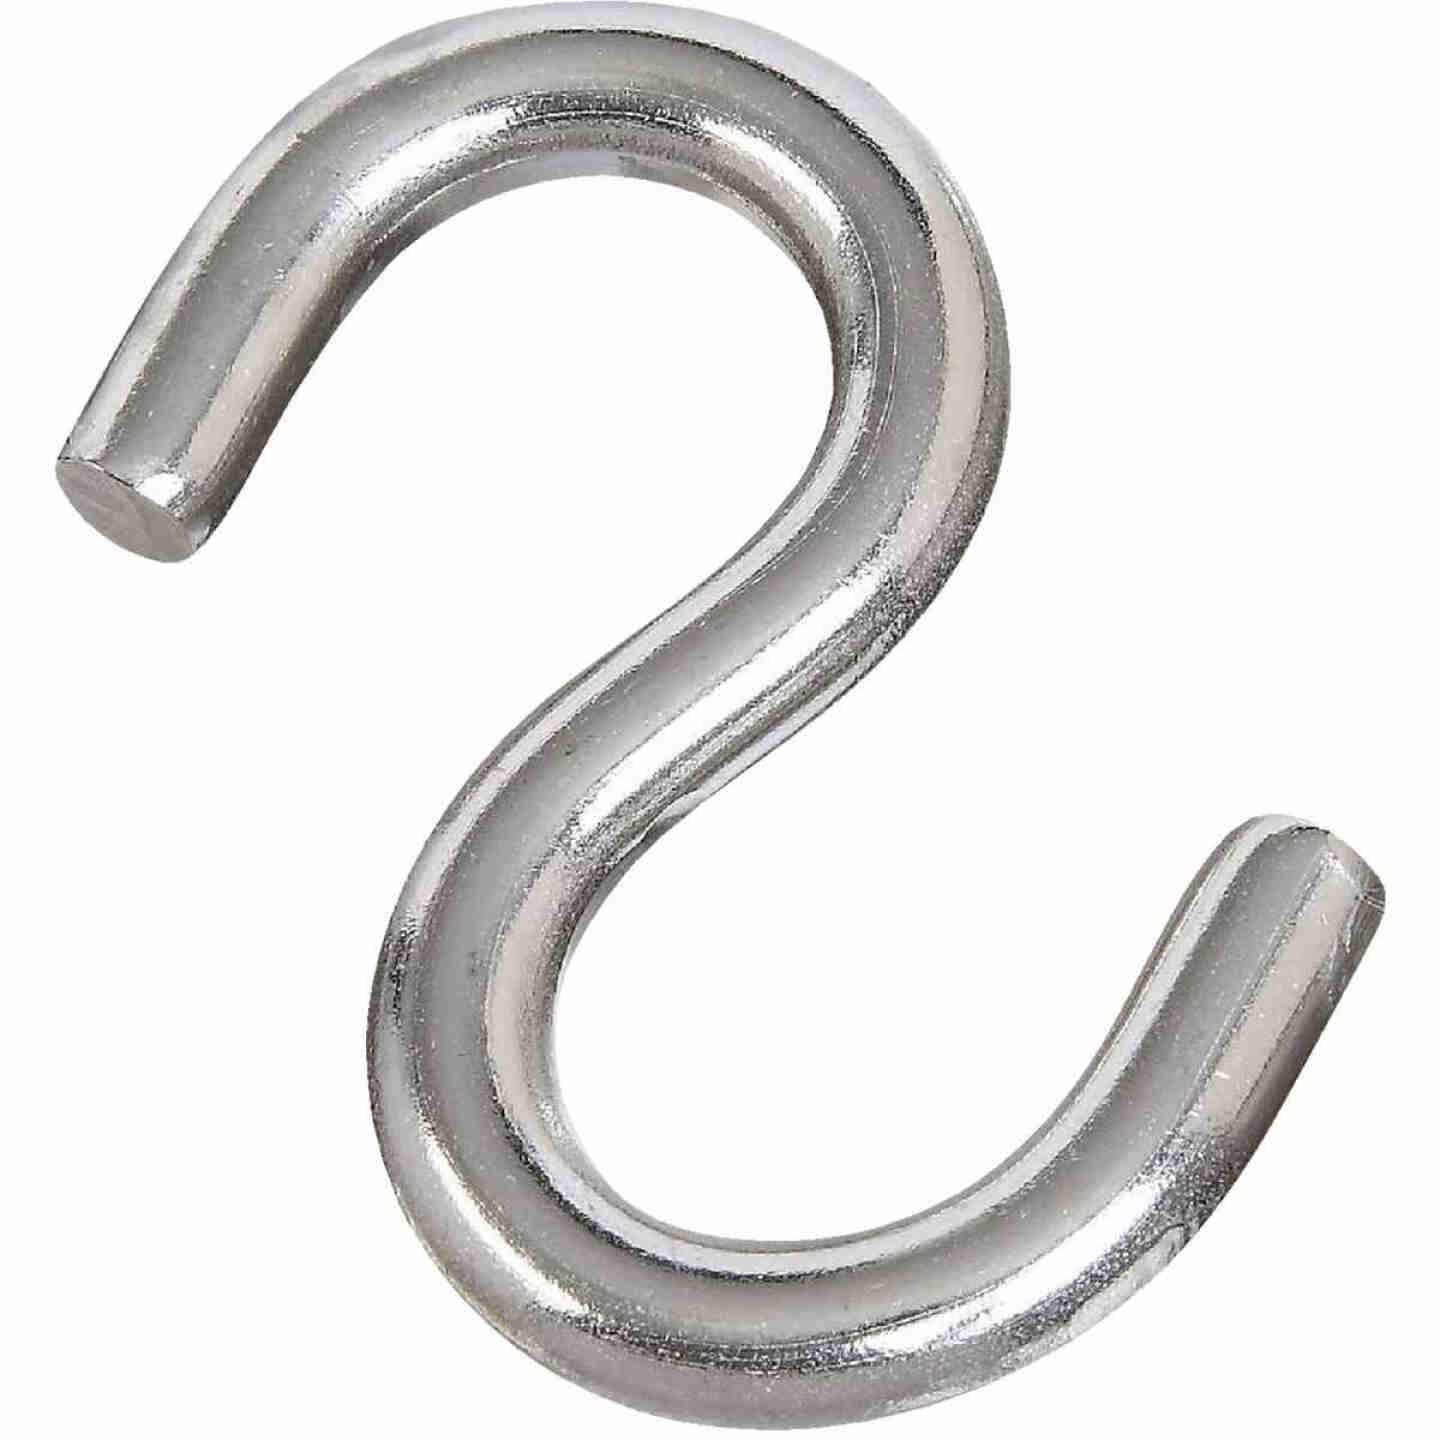 National 2-1/2 In. Stainless Steel Heavy Open S Hook Image 1